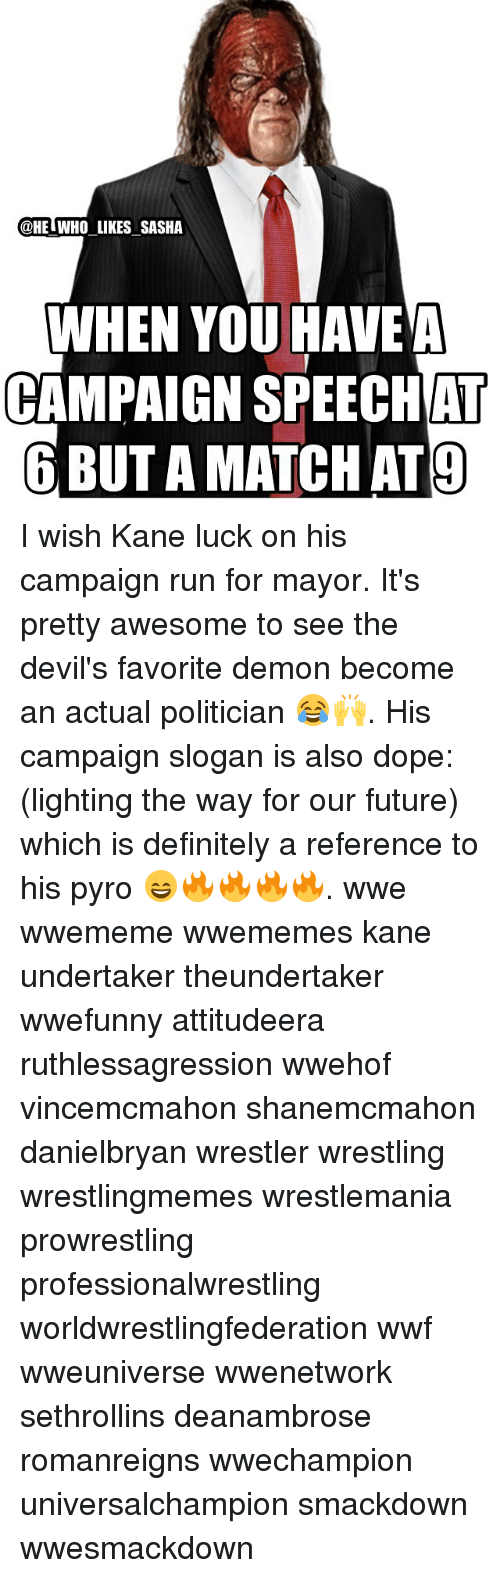 pyros: @HE WHO LIKES SASHA  WHEN YOU HAVE A  CAMPAIGN AT  6 BUTAMATCHAT9 I wish Kane luck on his campaign run for mayor. It's pretty awesome to see the devil's favorite demon become an actual politician 😂🙌. His campaign slogan is also dope: (lighting the way for our future) which is definitely a reference to his pyro 😄🔥🔥🔥🔥. wwe wwememe wwememes kane undertaker theundertaker wwefunny attitudeera ruthlessagression wwehof vincemcmahon shanemcmahon danielbryan wrestler wrestling wrestlingmemes wrestlemania prowrestling professionalwrestling worldwrestlingfederation wwf wweuniverse wwenetwork sethrollins deanambrose romanreigns wwechampion universalchampion smackdown wwesmackdown